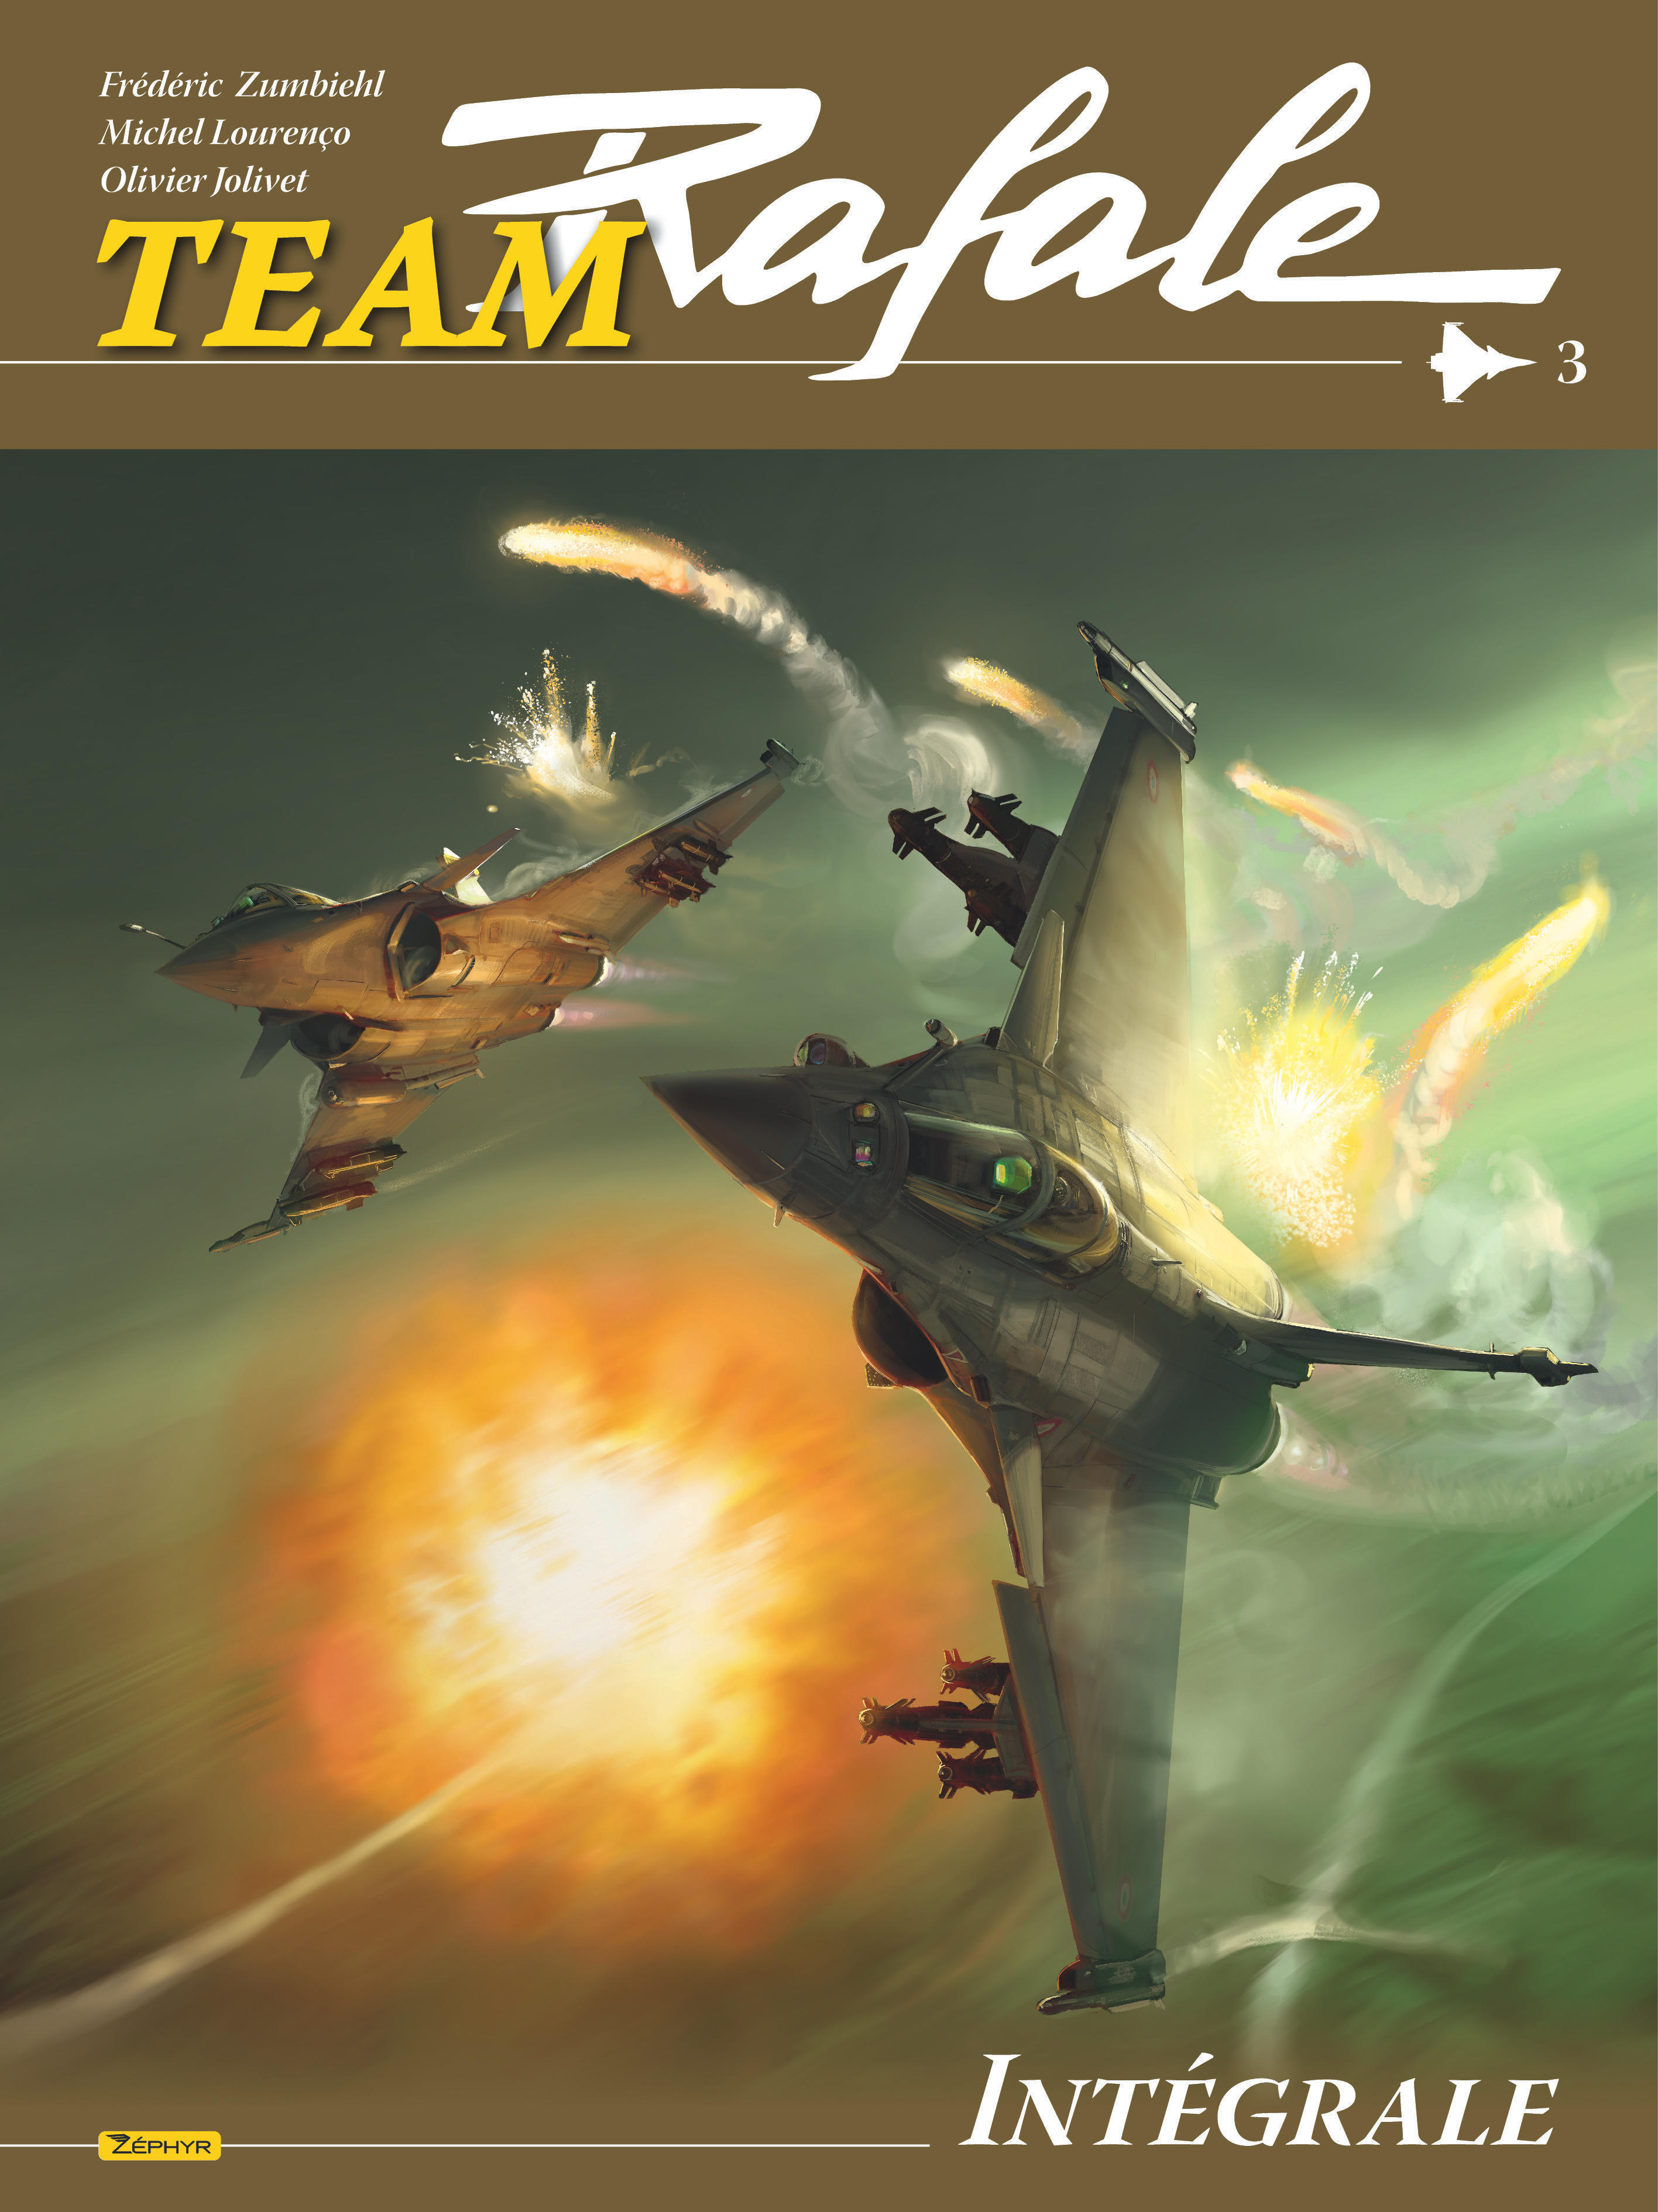 BANDE DESSINEE - TEAM RAFALE INTEGRALE - TOME 3